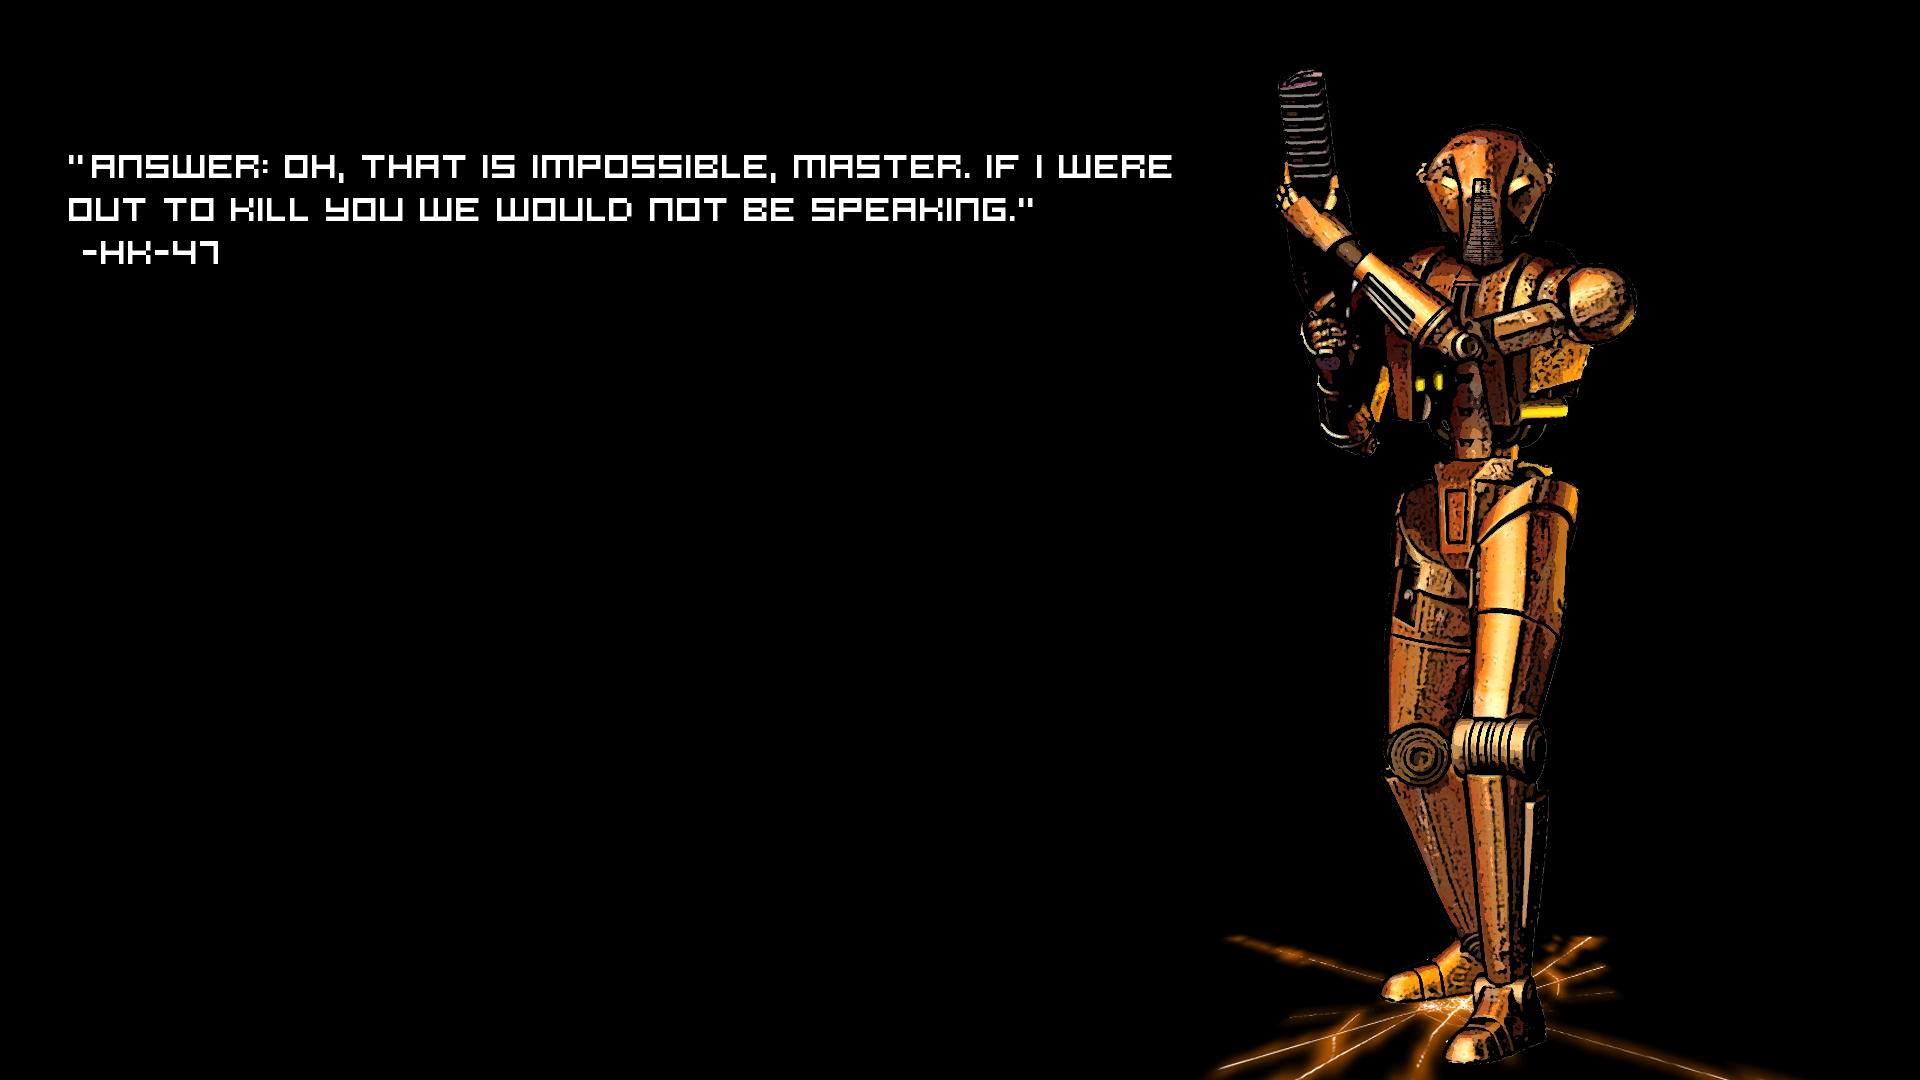 Star Wars Wallpaper 1920x1080 Star Wars Text Quotes HK47 1920x1080